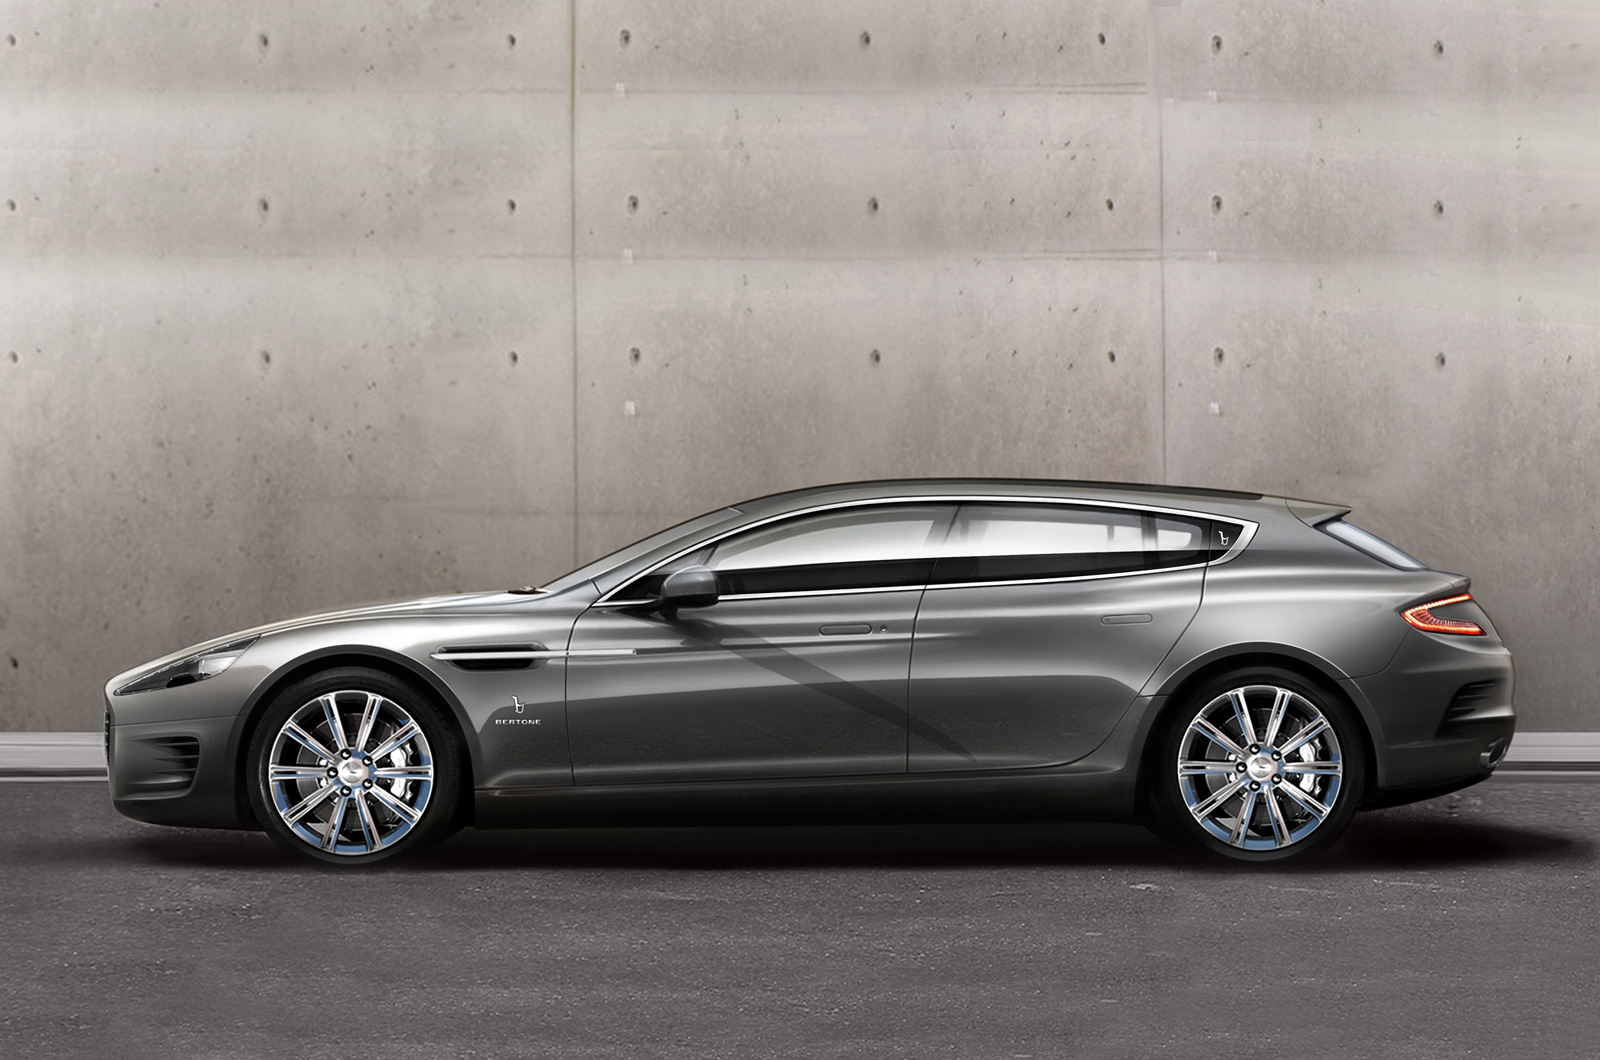 Davide458italia: Bertone Aston Martin Rapide Shooting Brake